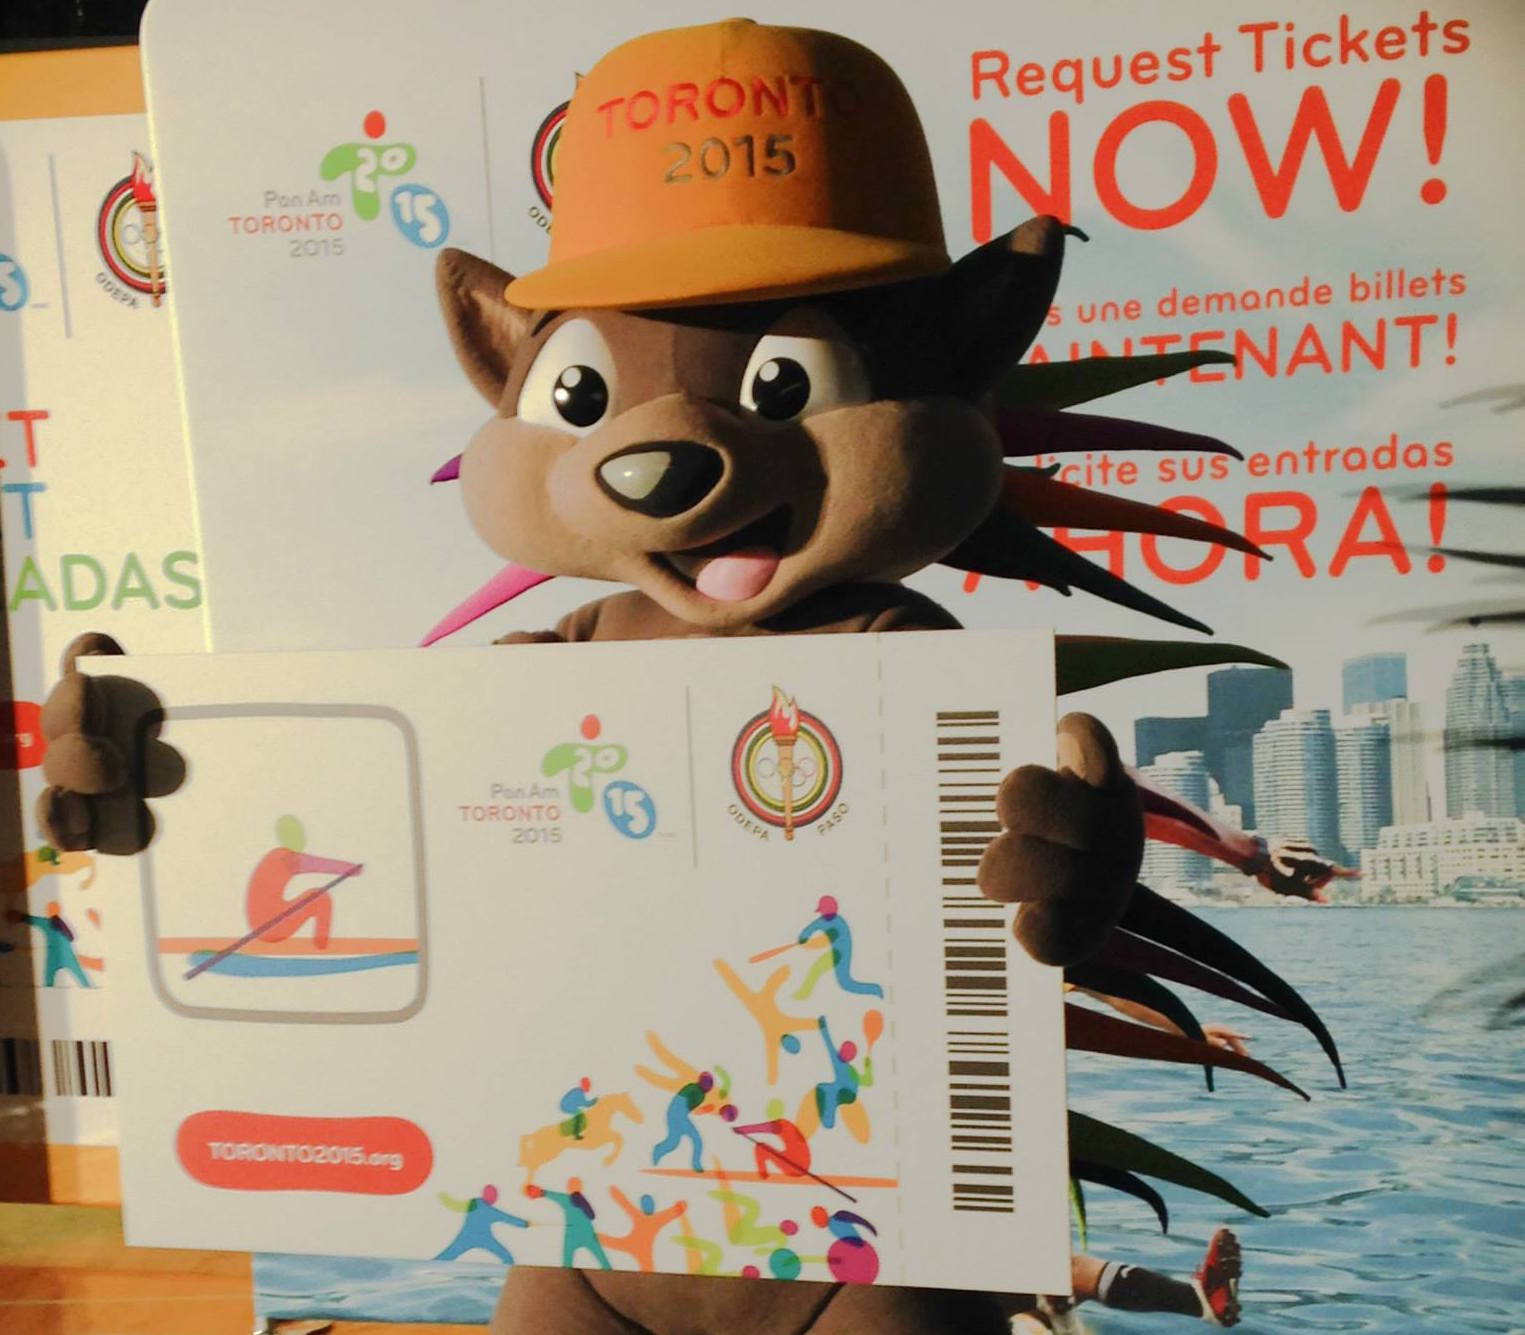 Tickets for the Toronto 2015 Pan American Games are going fast ©Toronto 2015/Facebook